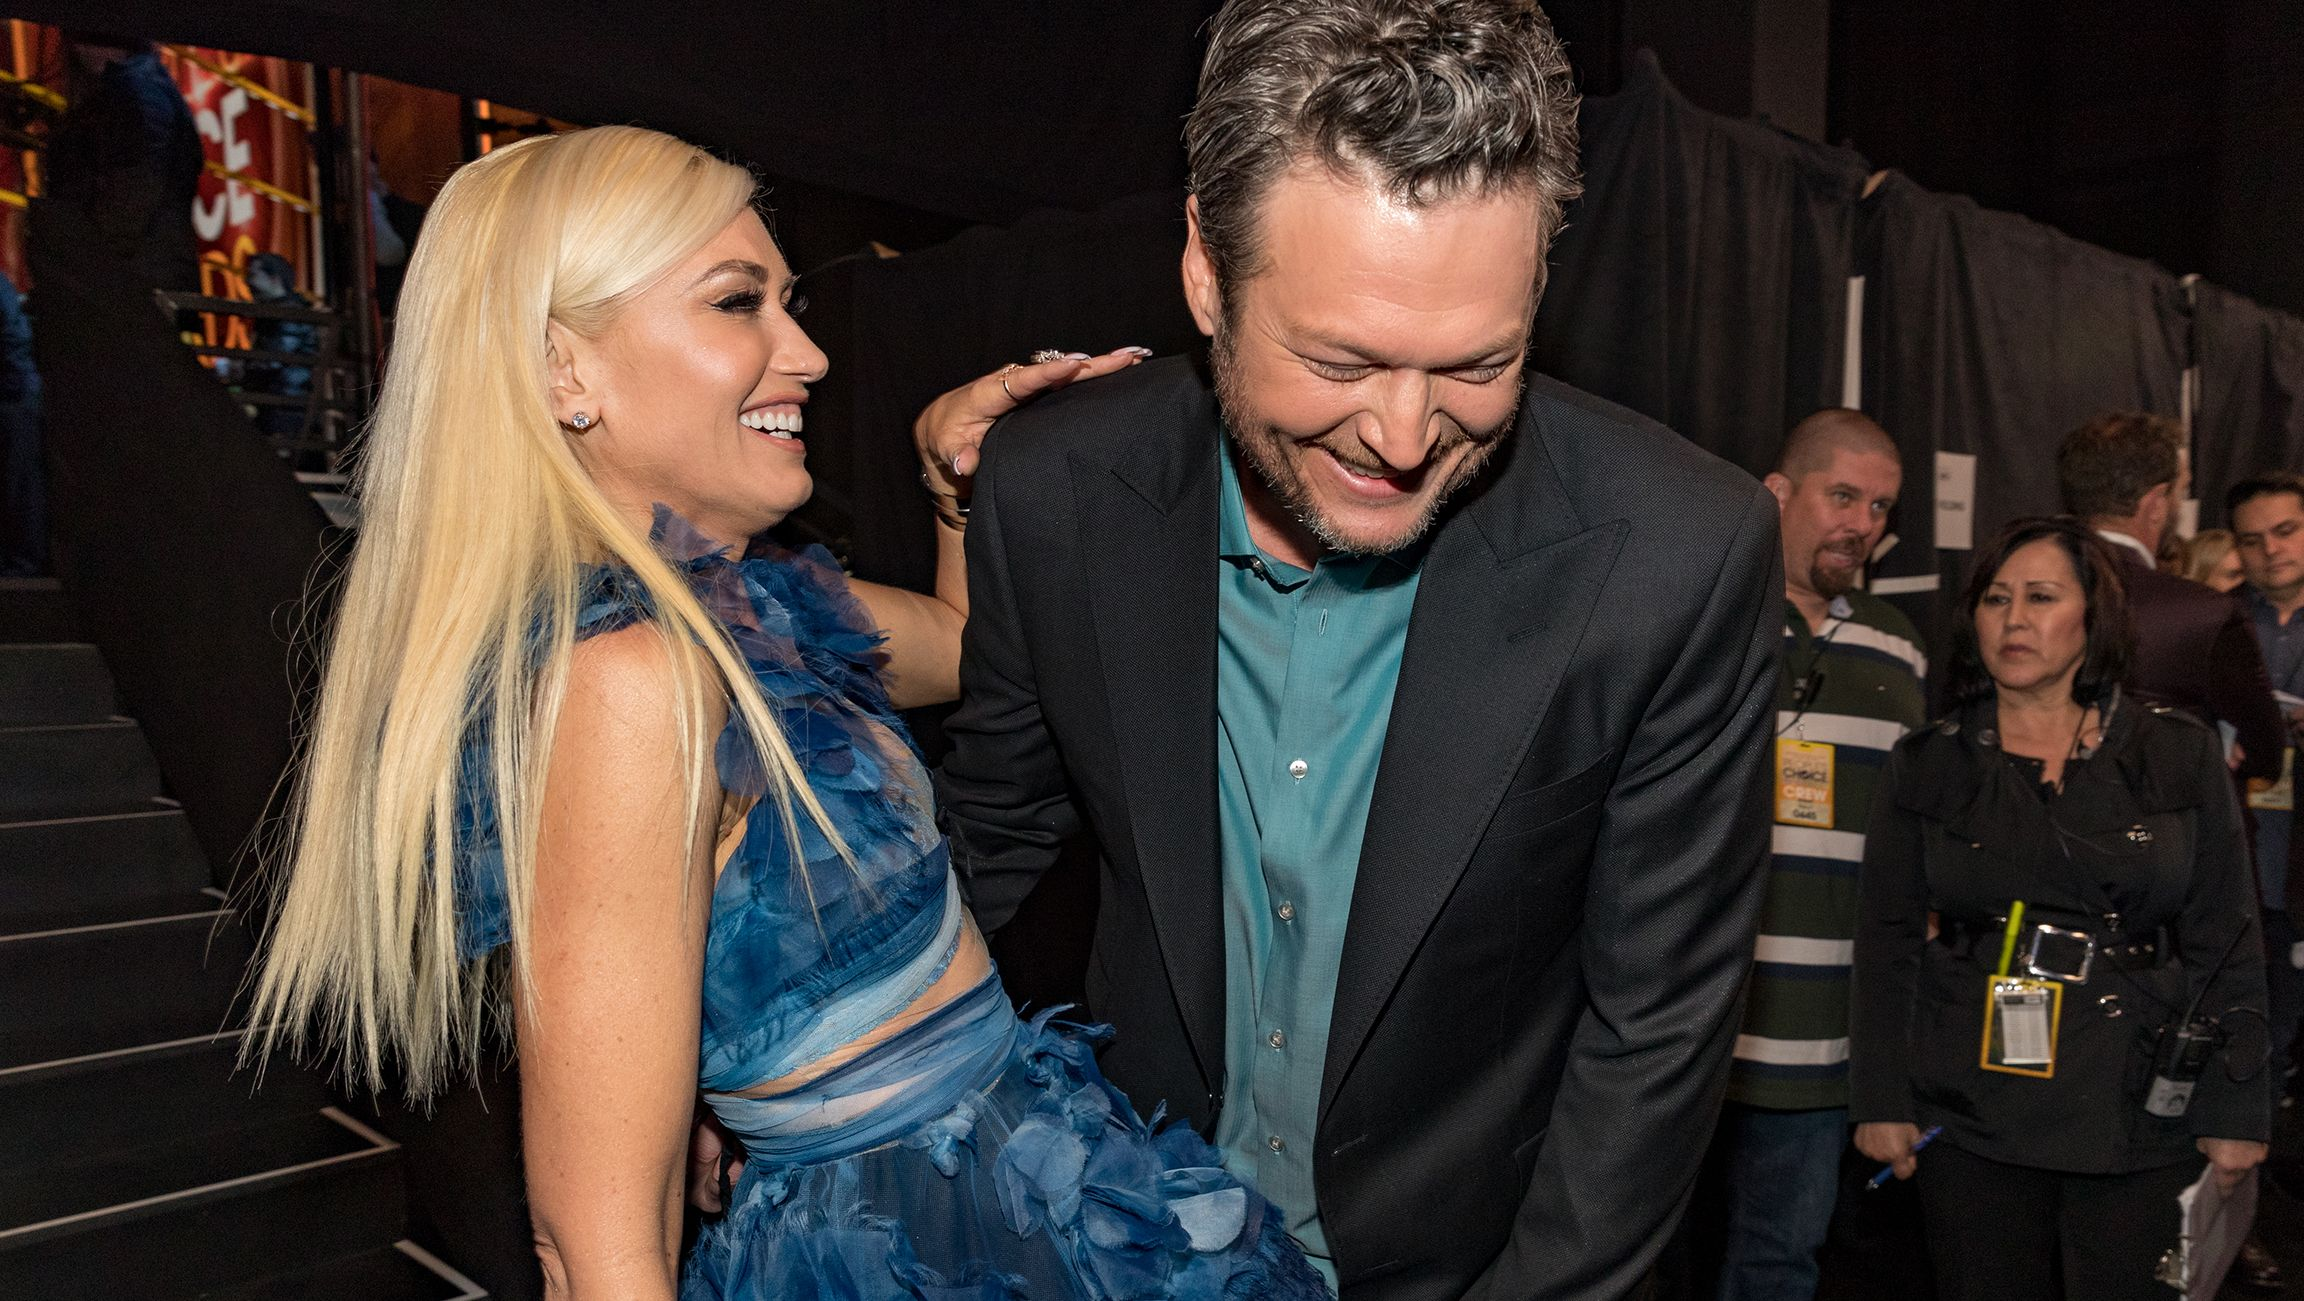 Gwen Stefani Admitted the Sweetest Thing About Her Boyfriend Blake Shelton